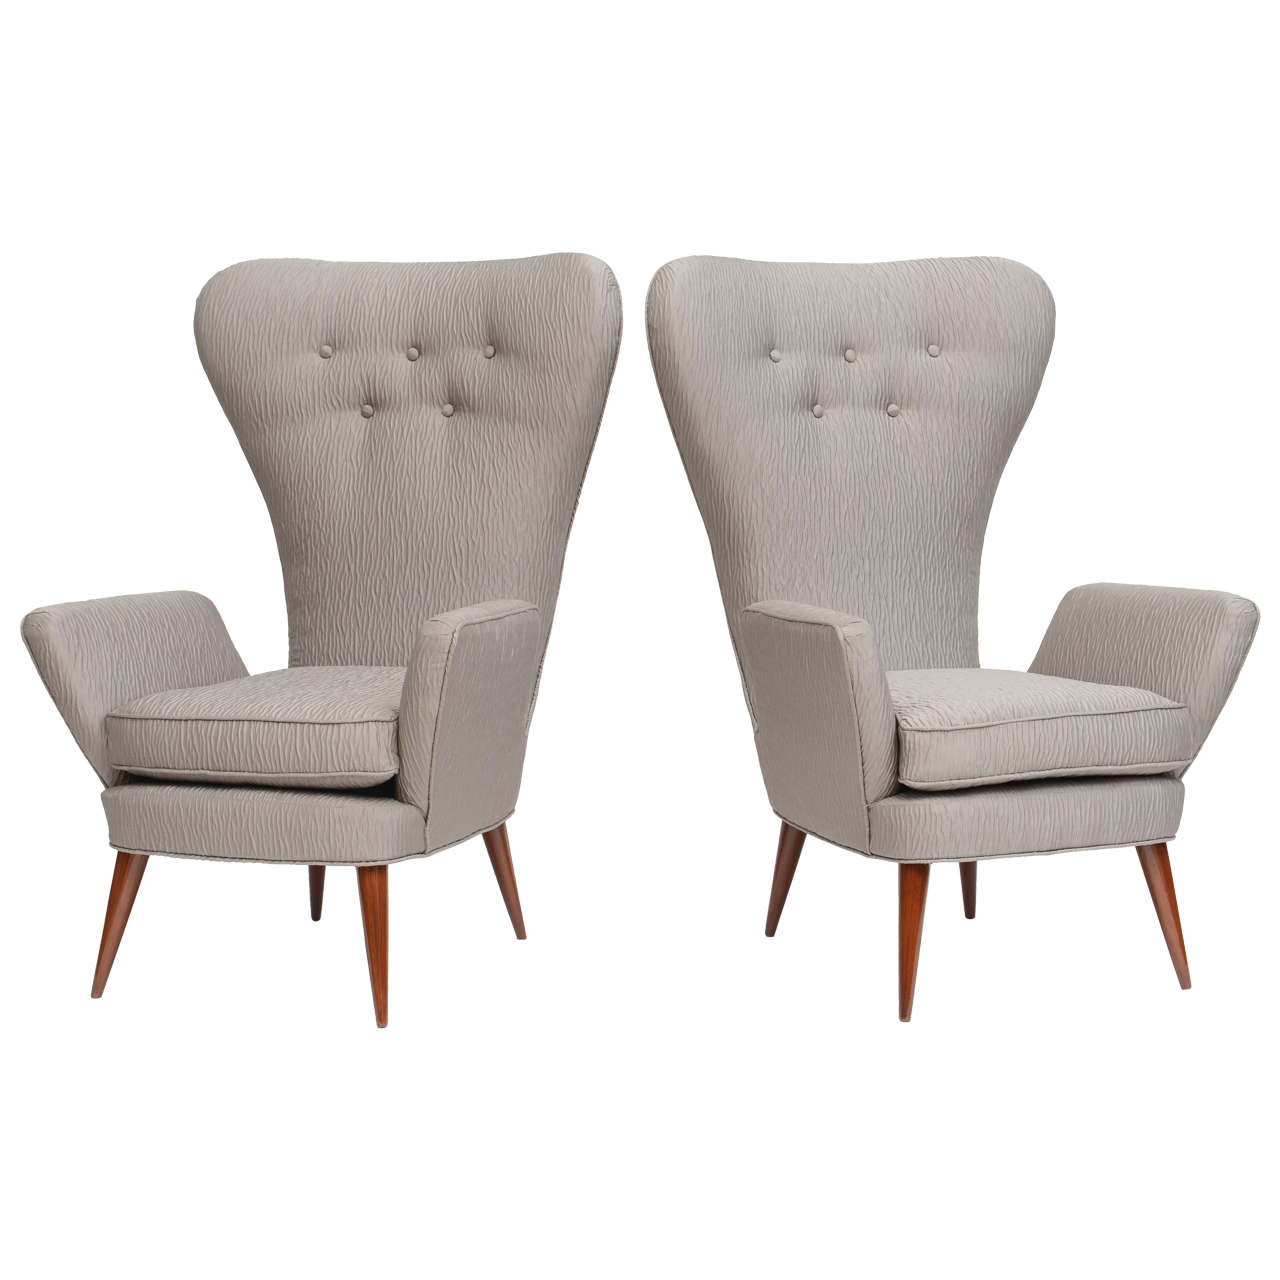 Marvelous Pair Of Italian Modern High Back Chairs, Italy 1